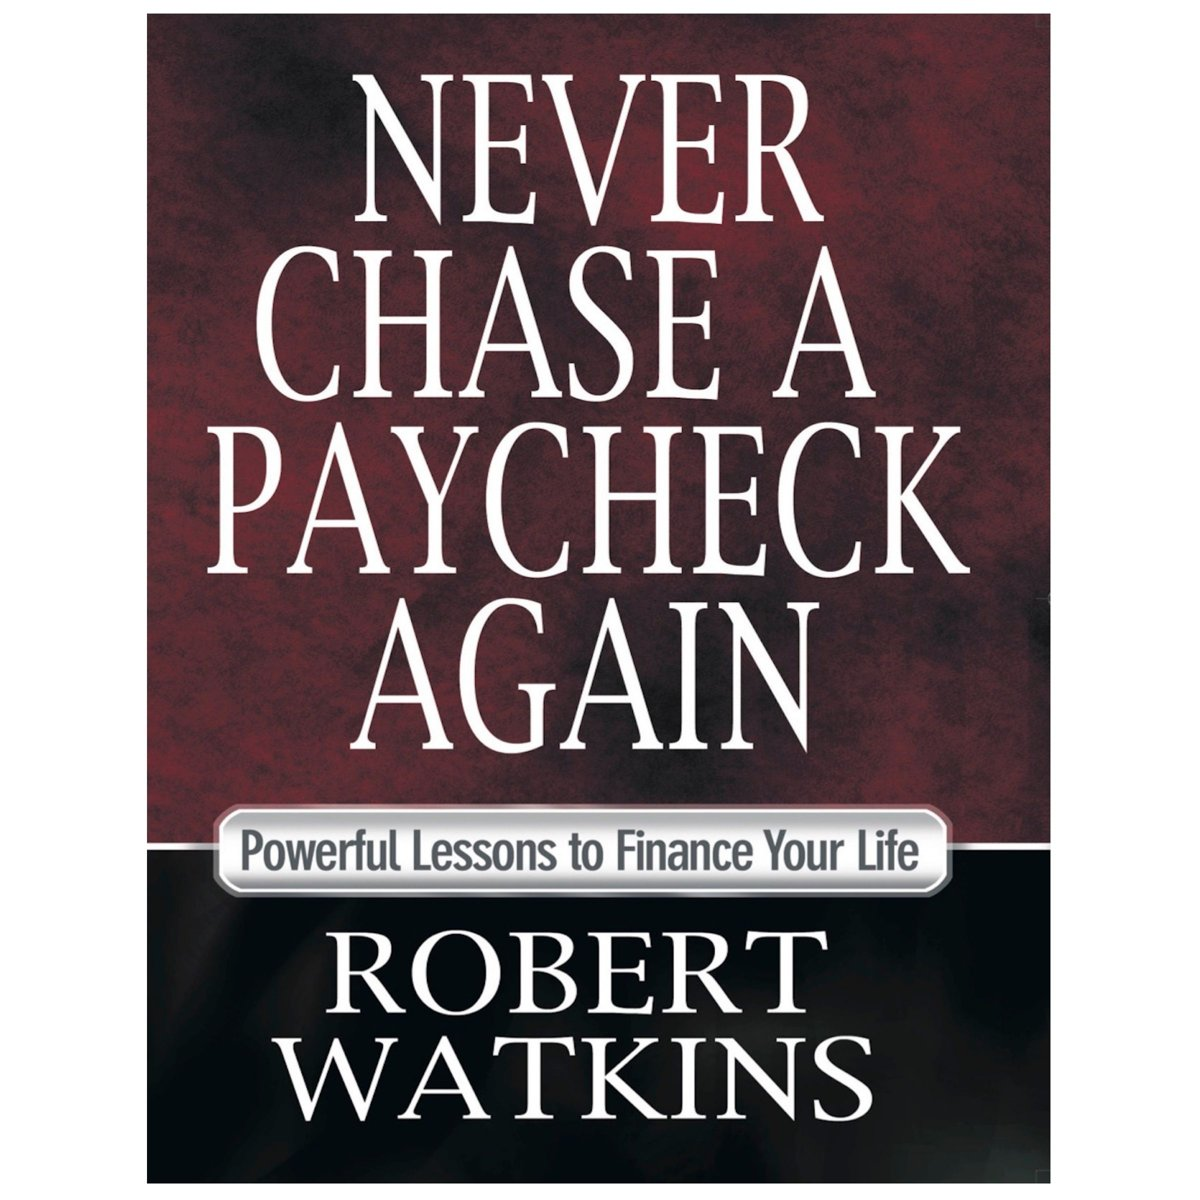 Never Chase A Paycheck Again